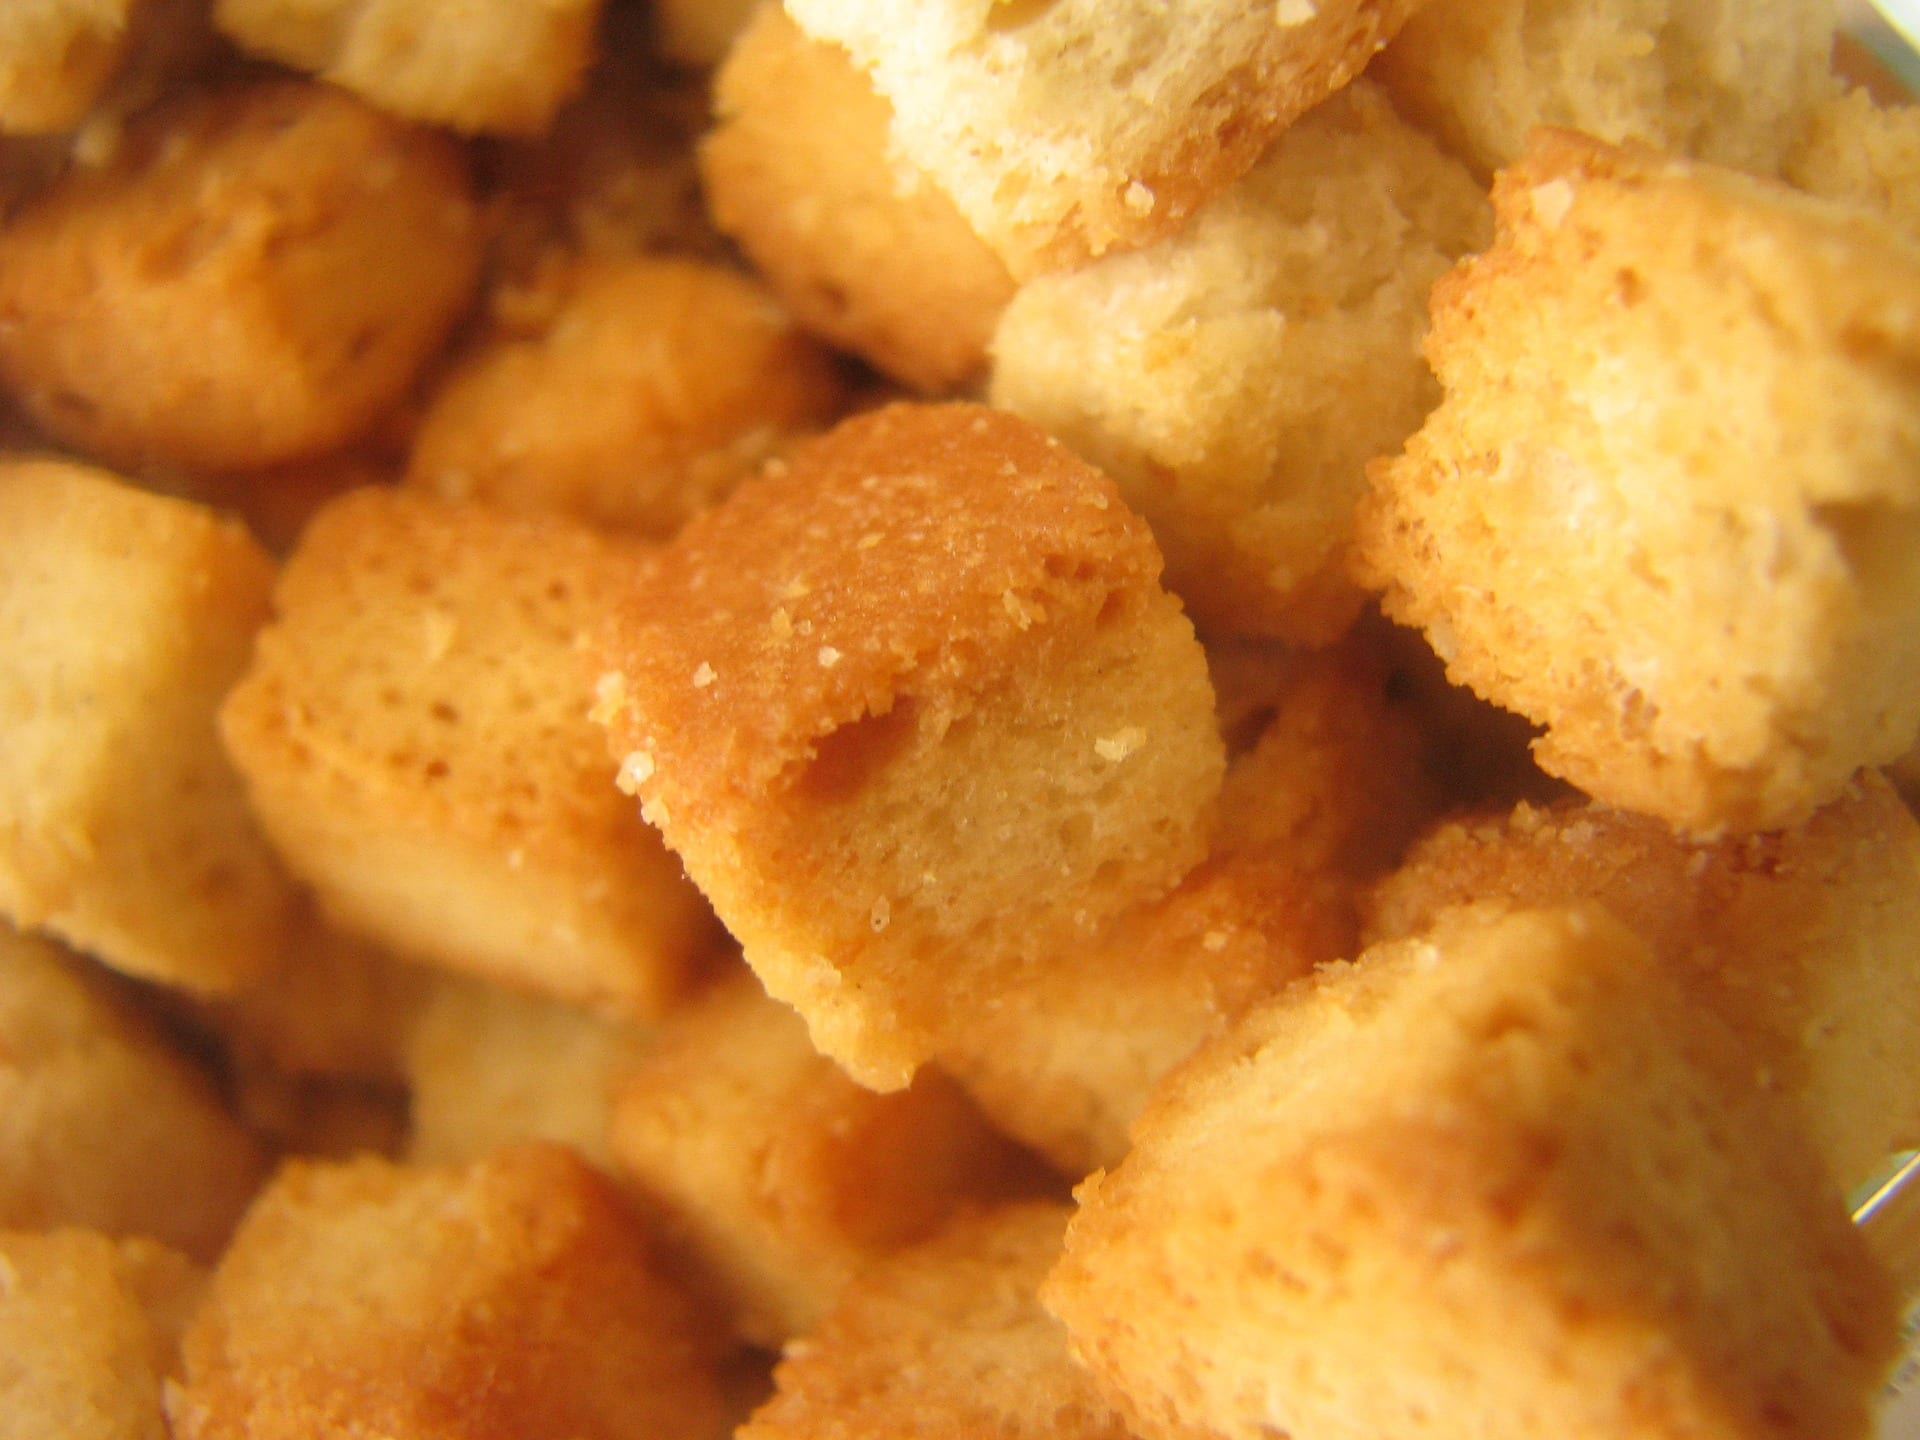 Croutons, up close and personal.